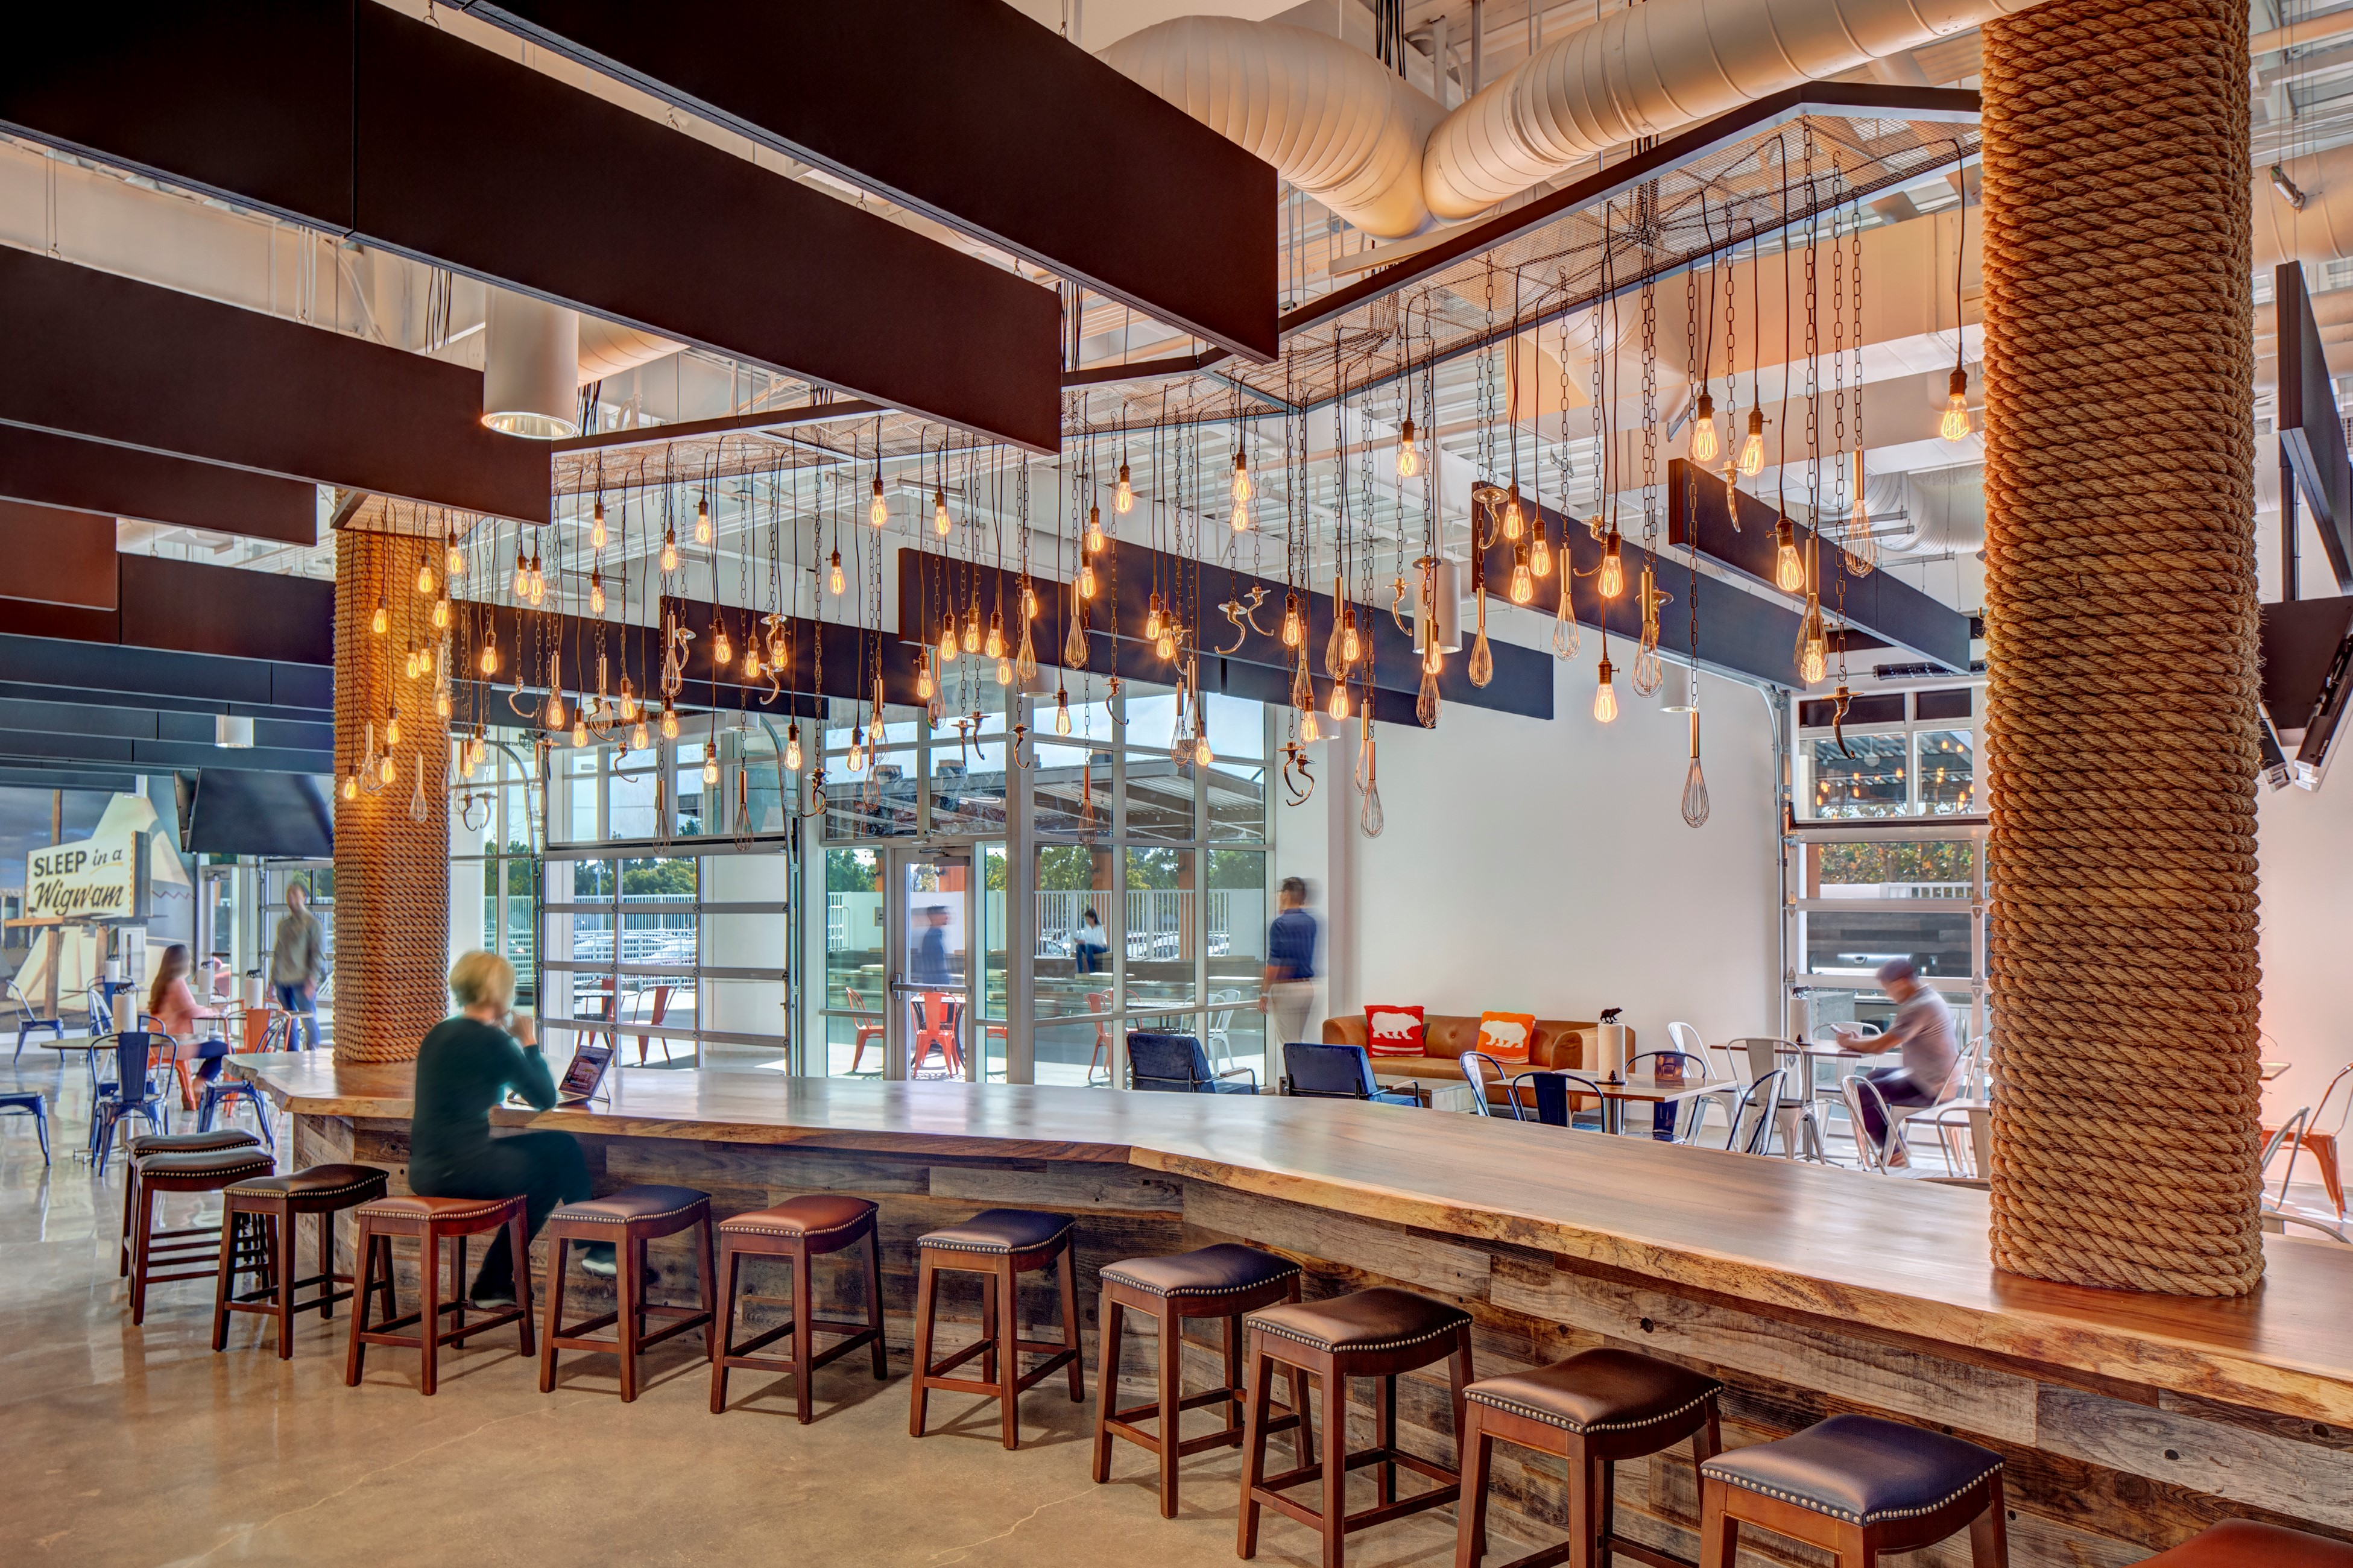 Lighting Design Services for Behr Headquarters. a variety of vintage light bulbs and fixtures hand over a wooden bar top.